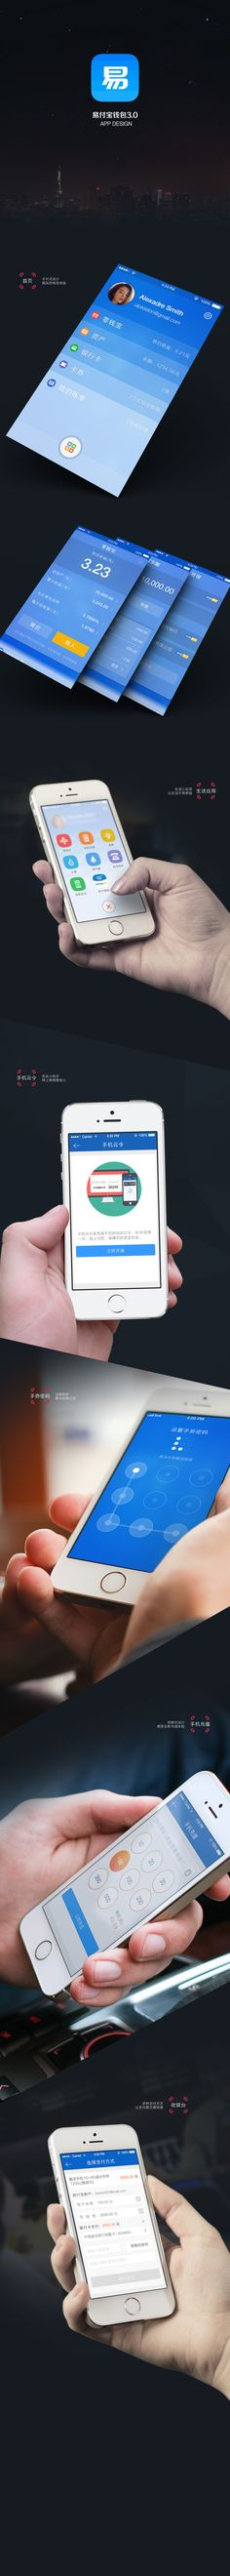 """Check out this @Behance project: """"SUNING WALLET 3.0"""" https://www.behance.net/gallery/24382175/SUNING-WALLET-30"""